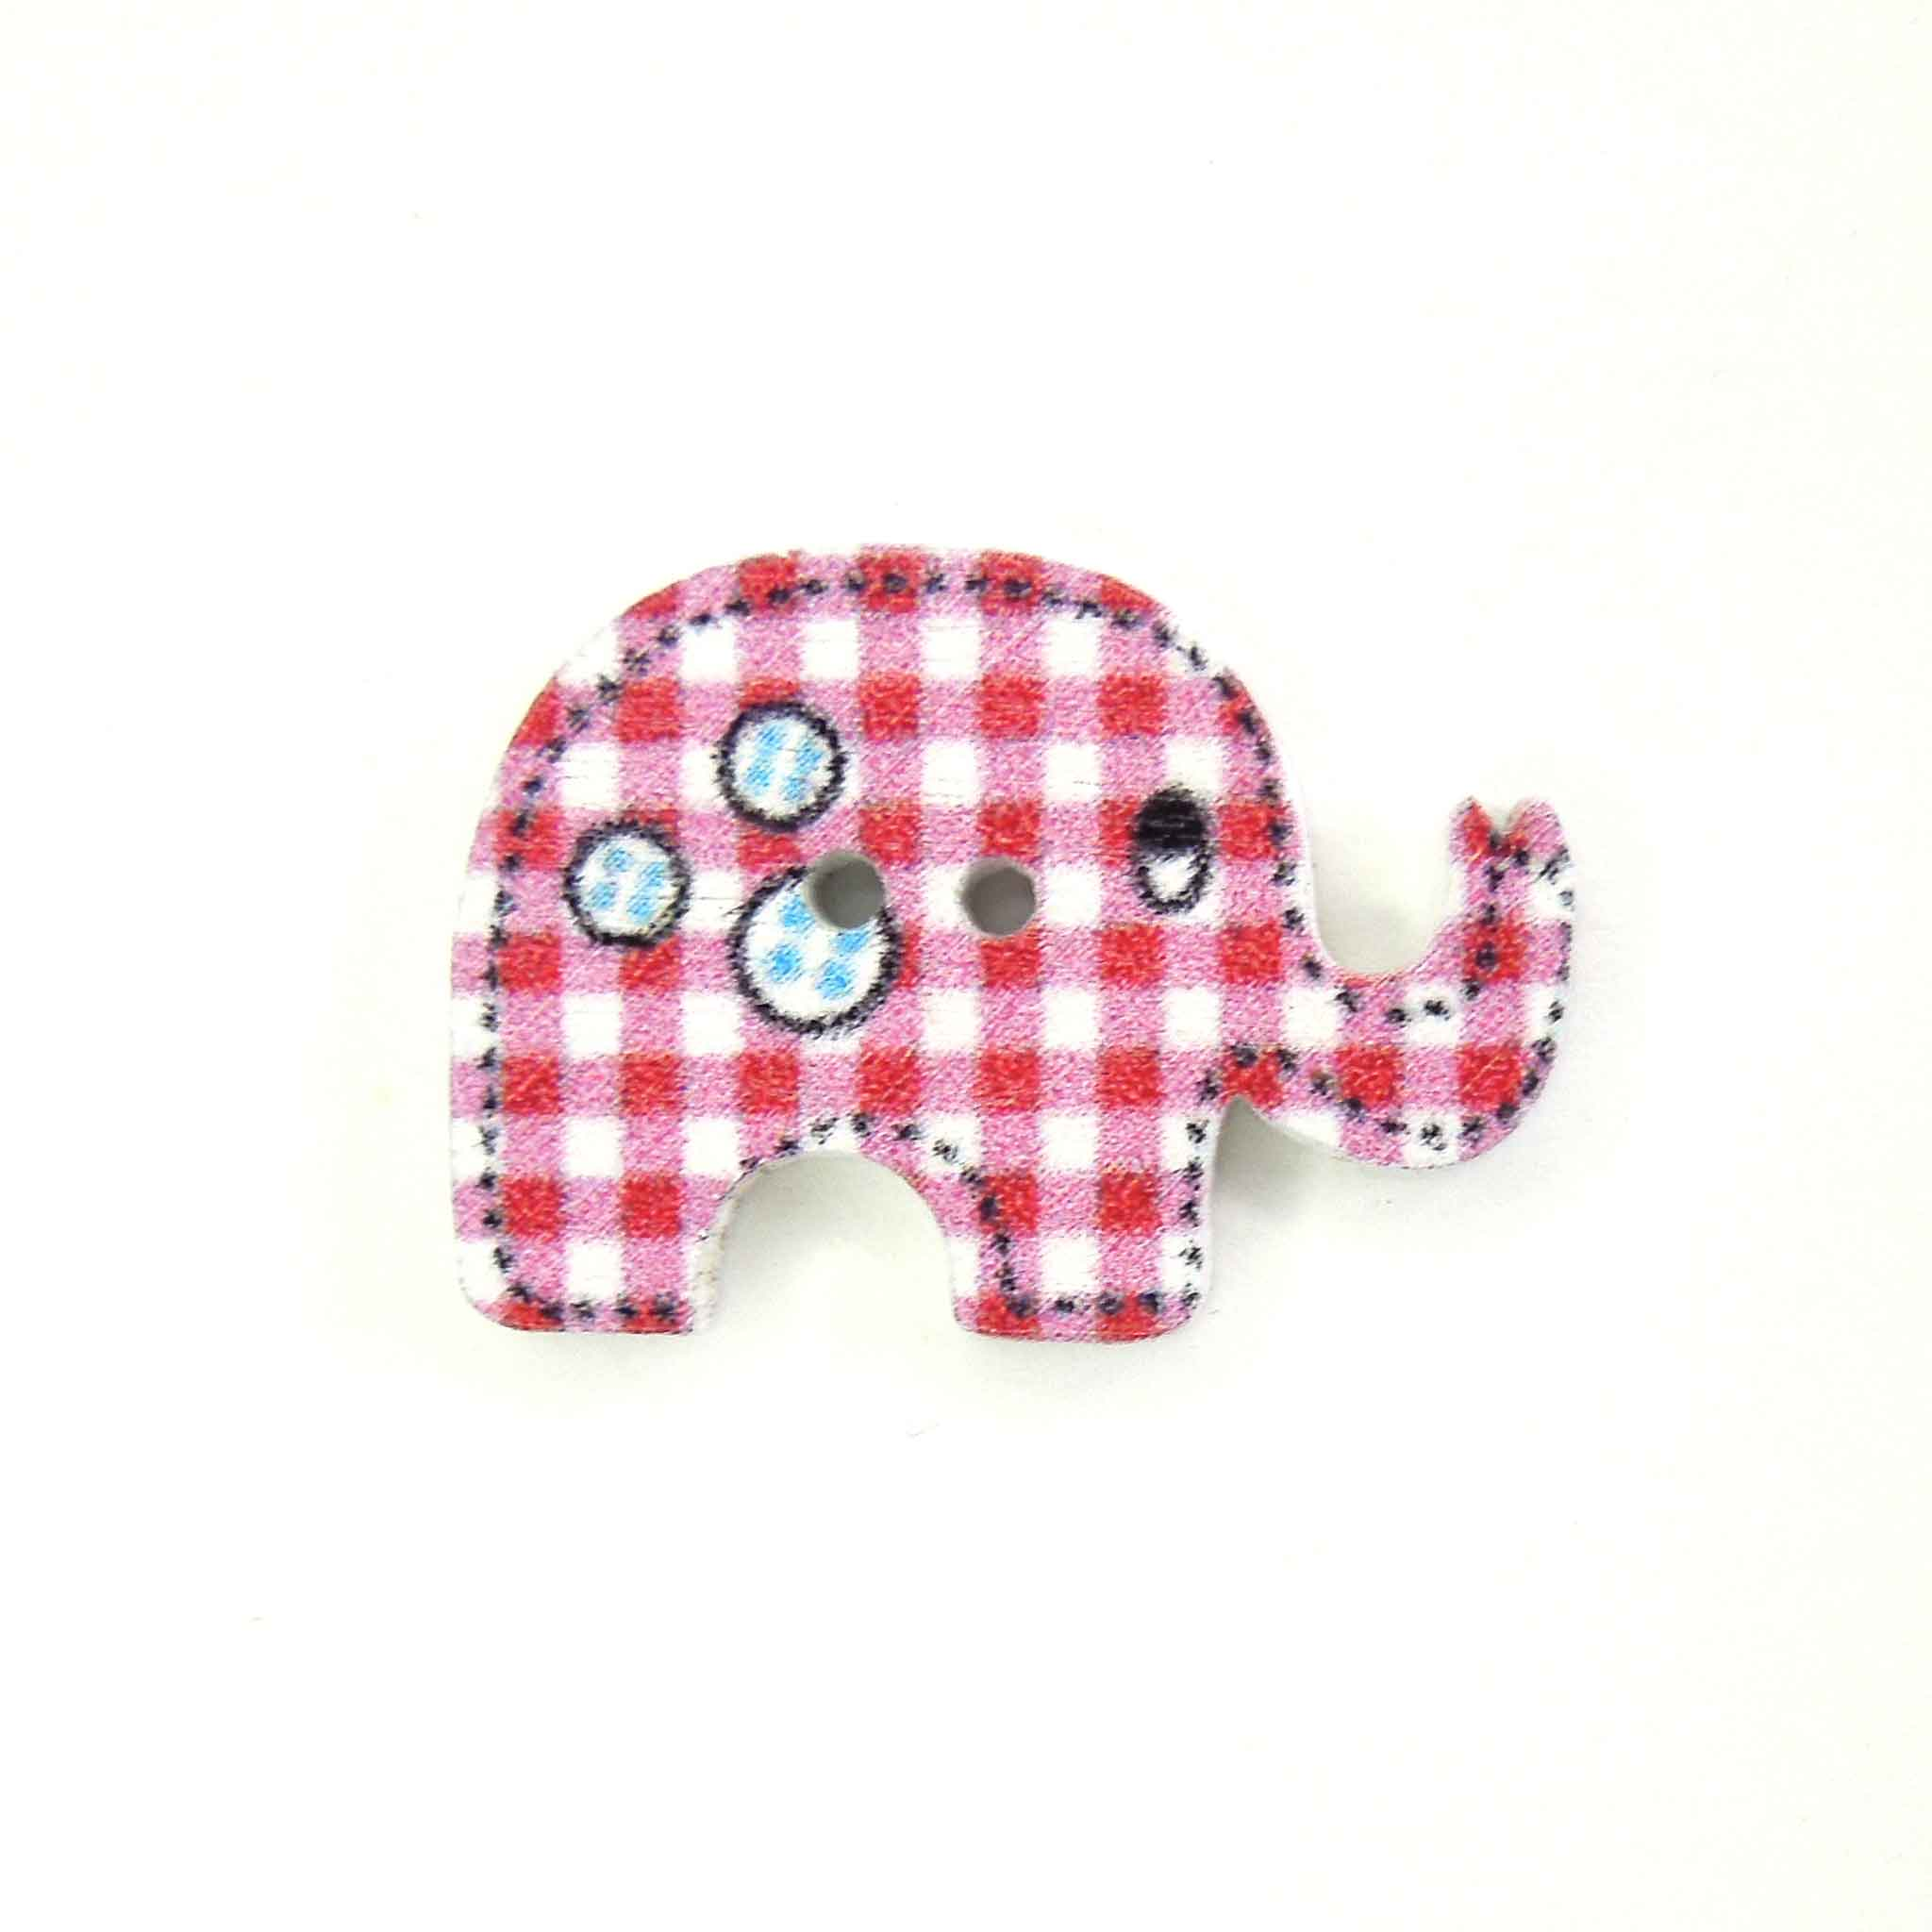 Kid's Pink Elephant Wood Buttons, 2 Holes, Pack of 6 Buttons